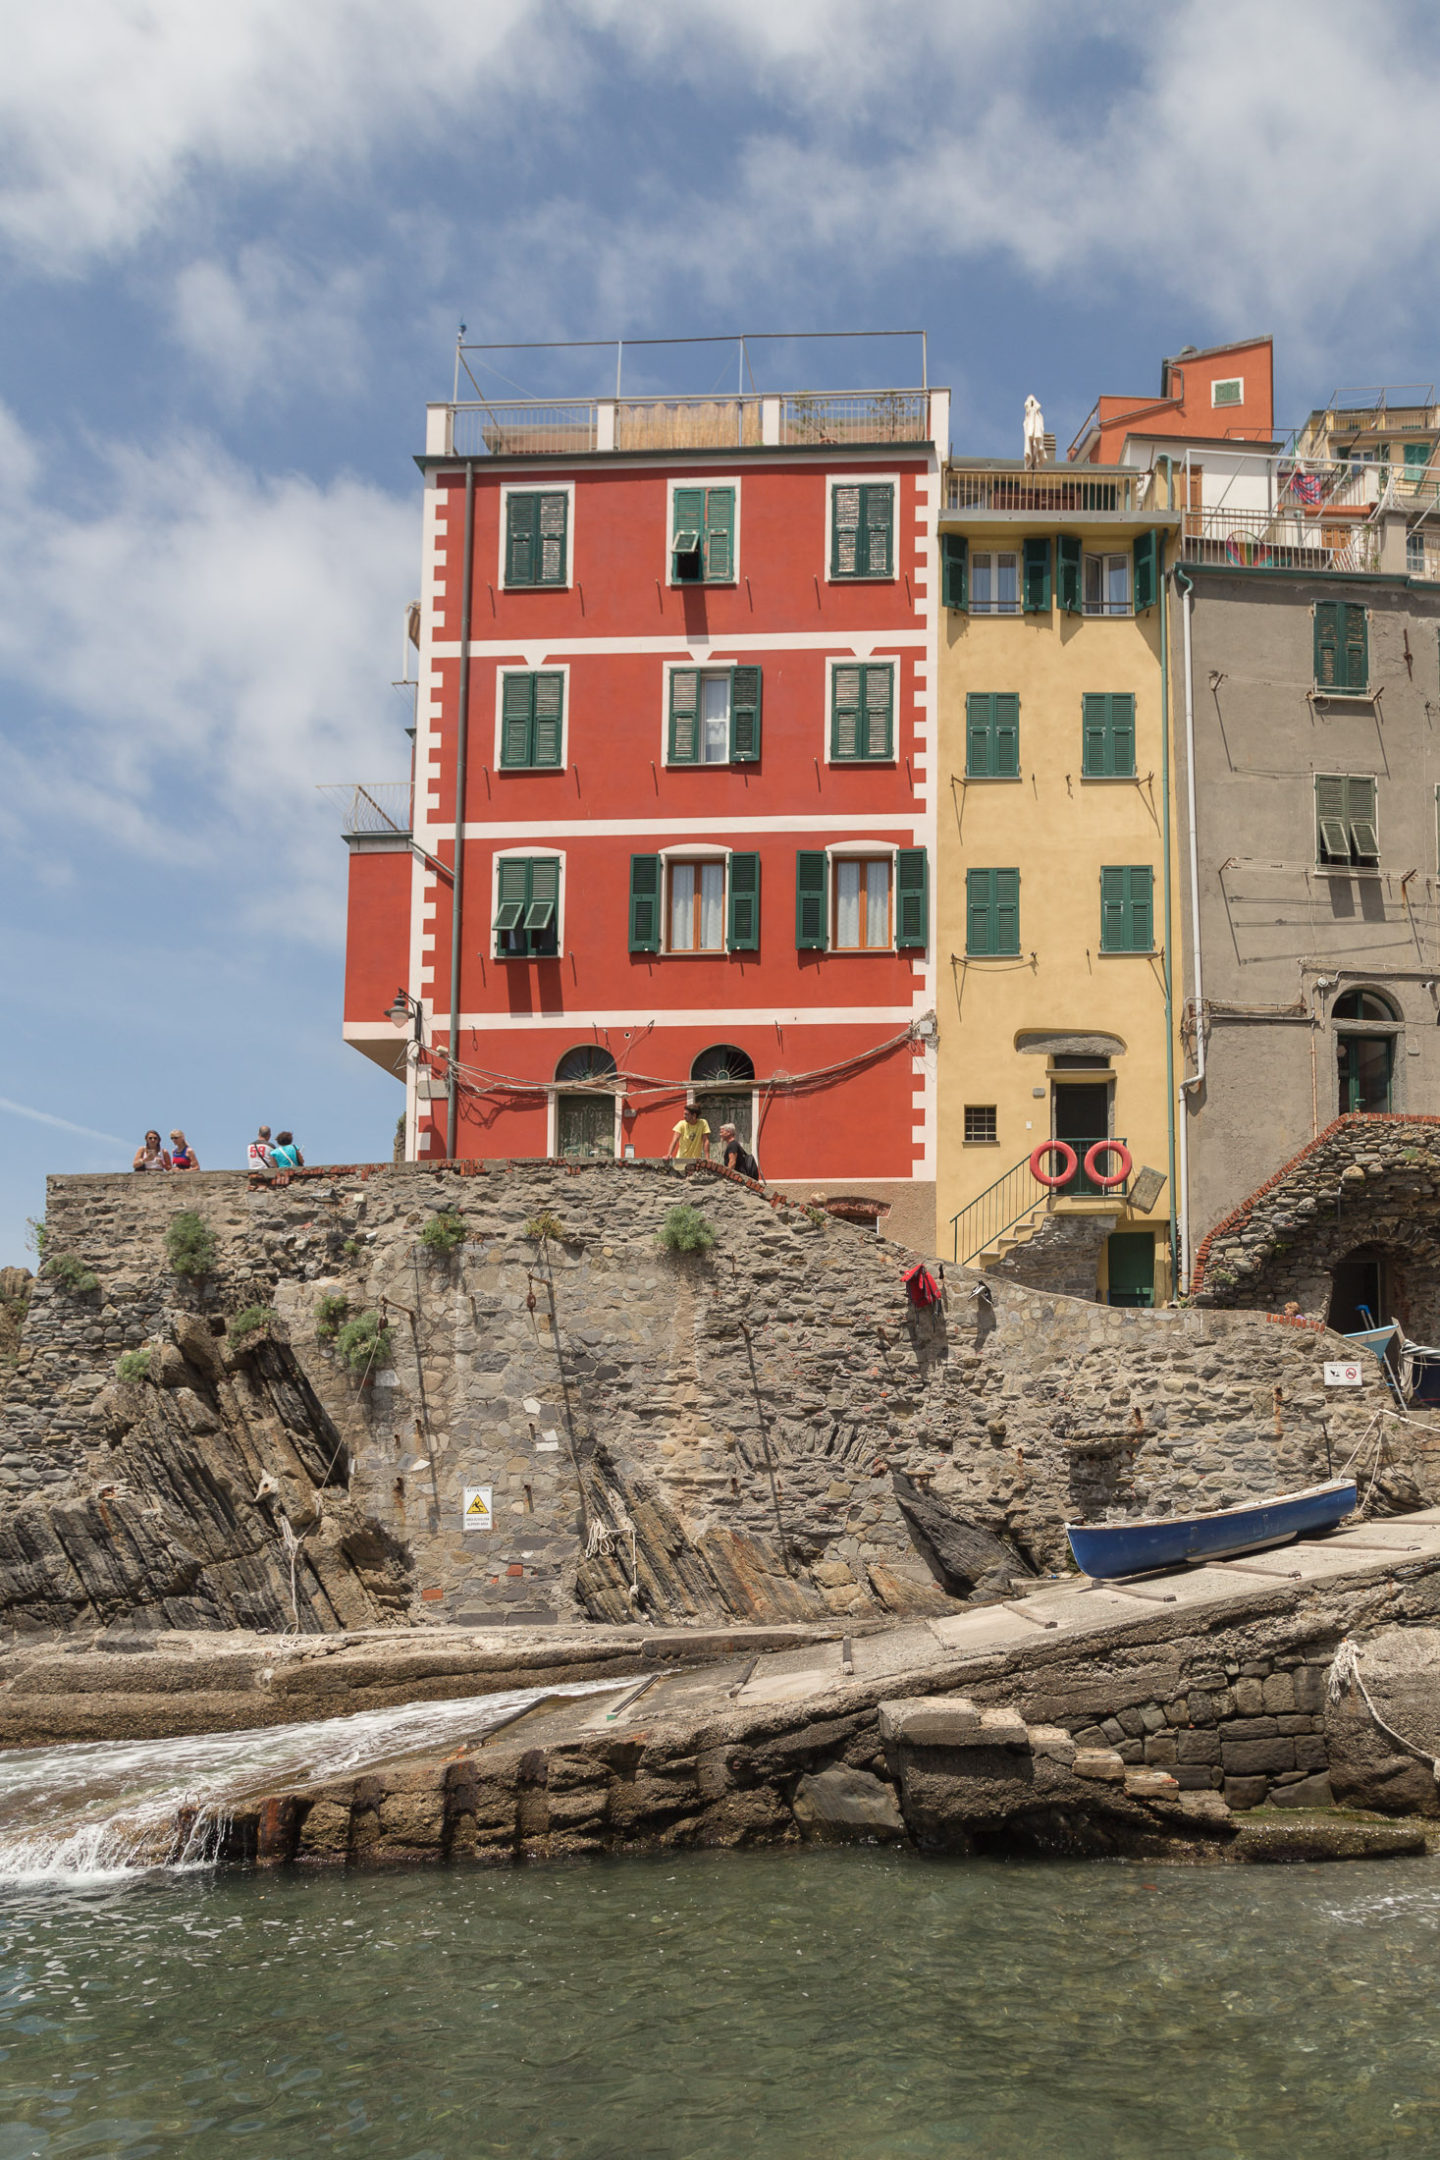 reddish building in riomaggiore right at edge of rocks